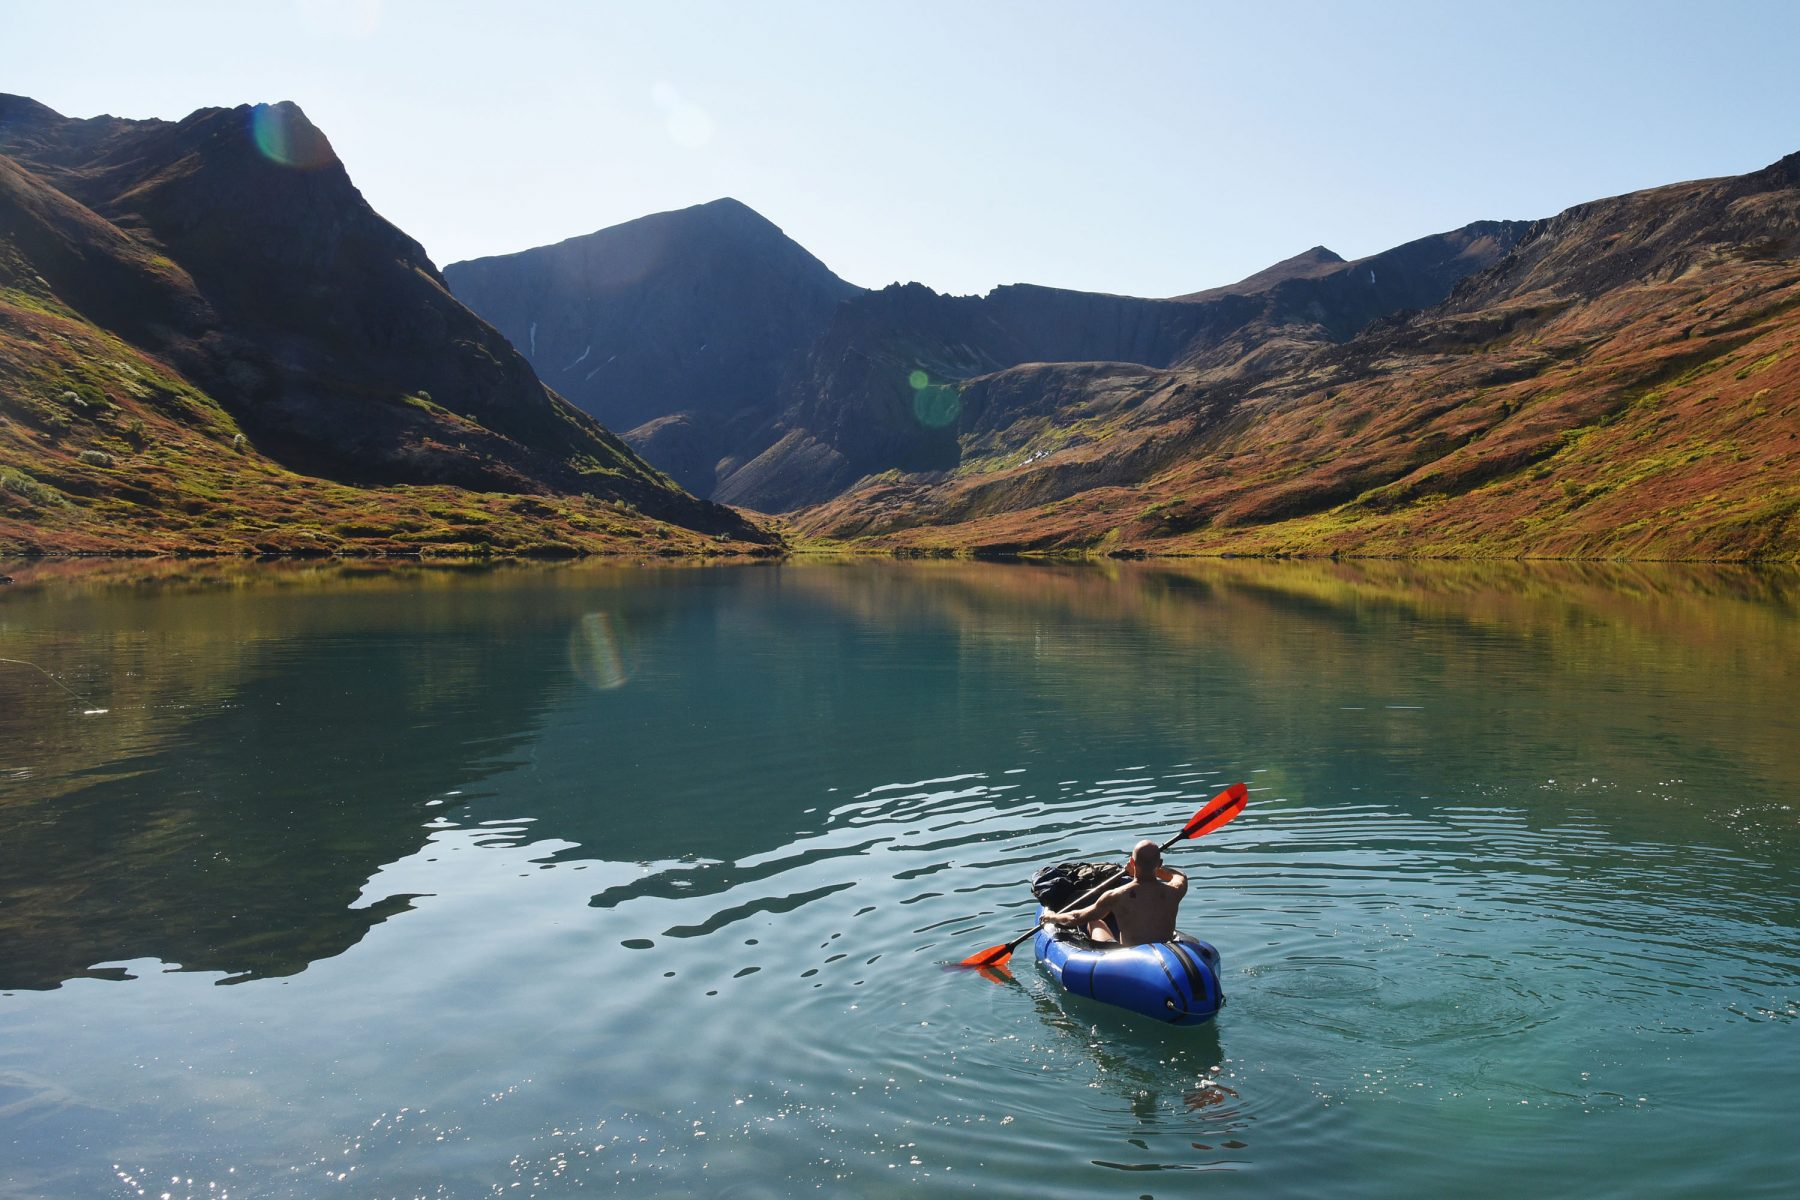 Greg Martin paddling an Alpacka Gnarwhal packraft across Symphony Lake